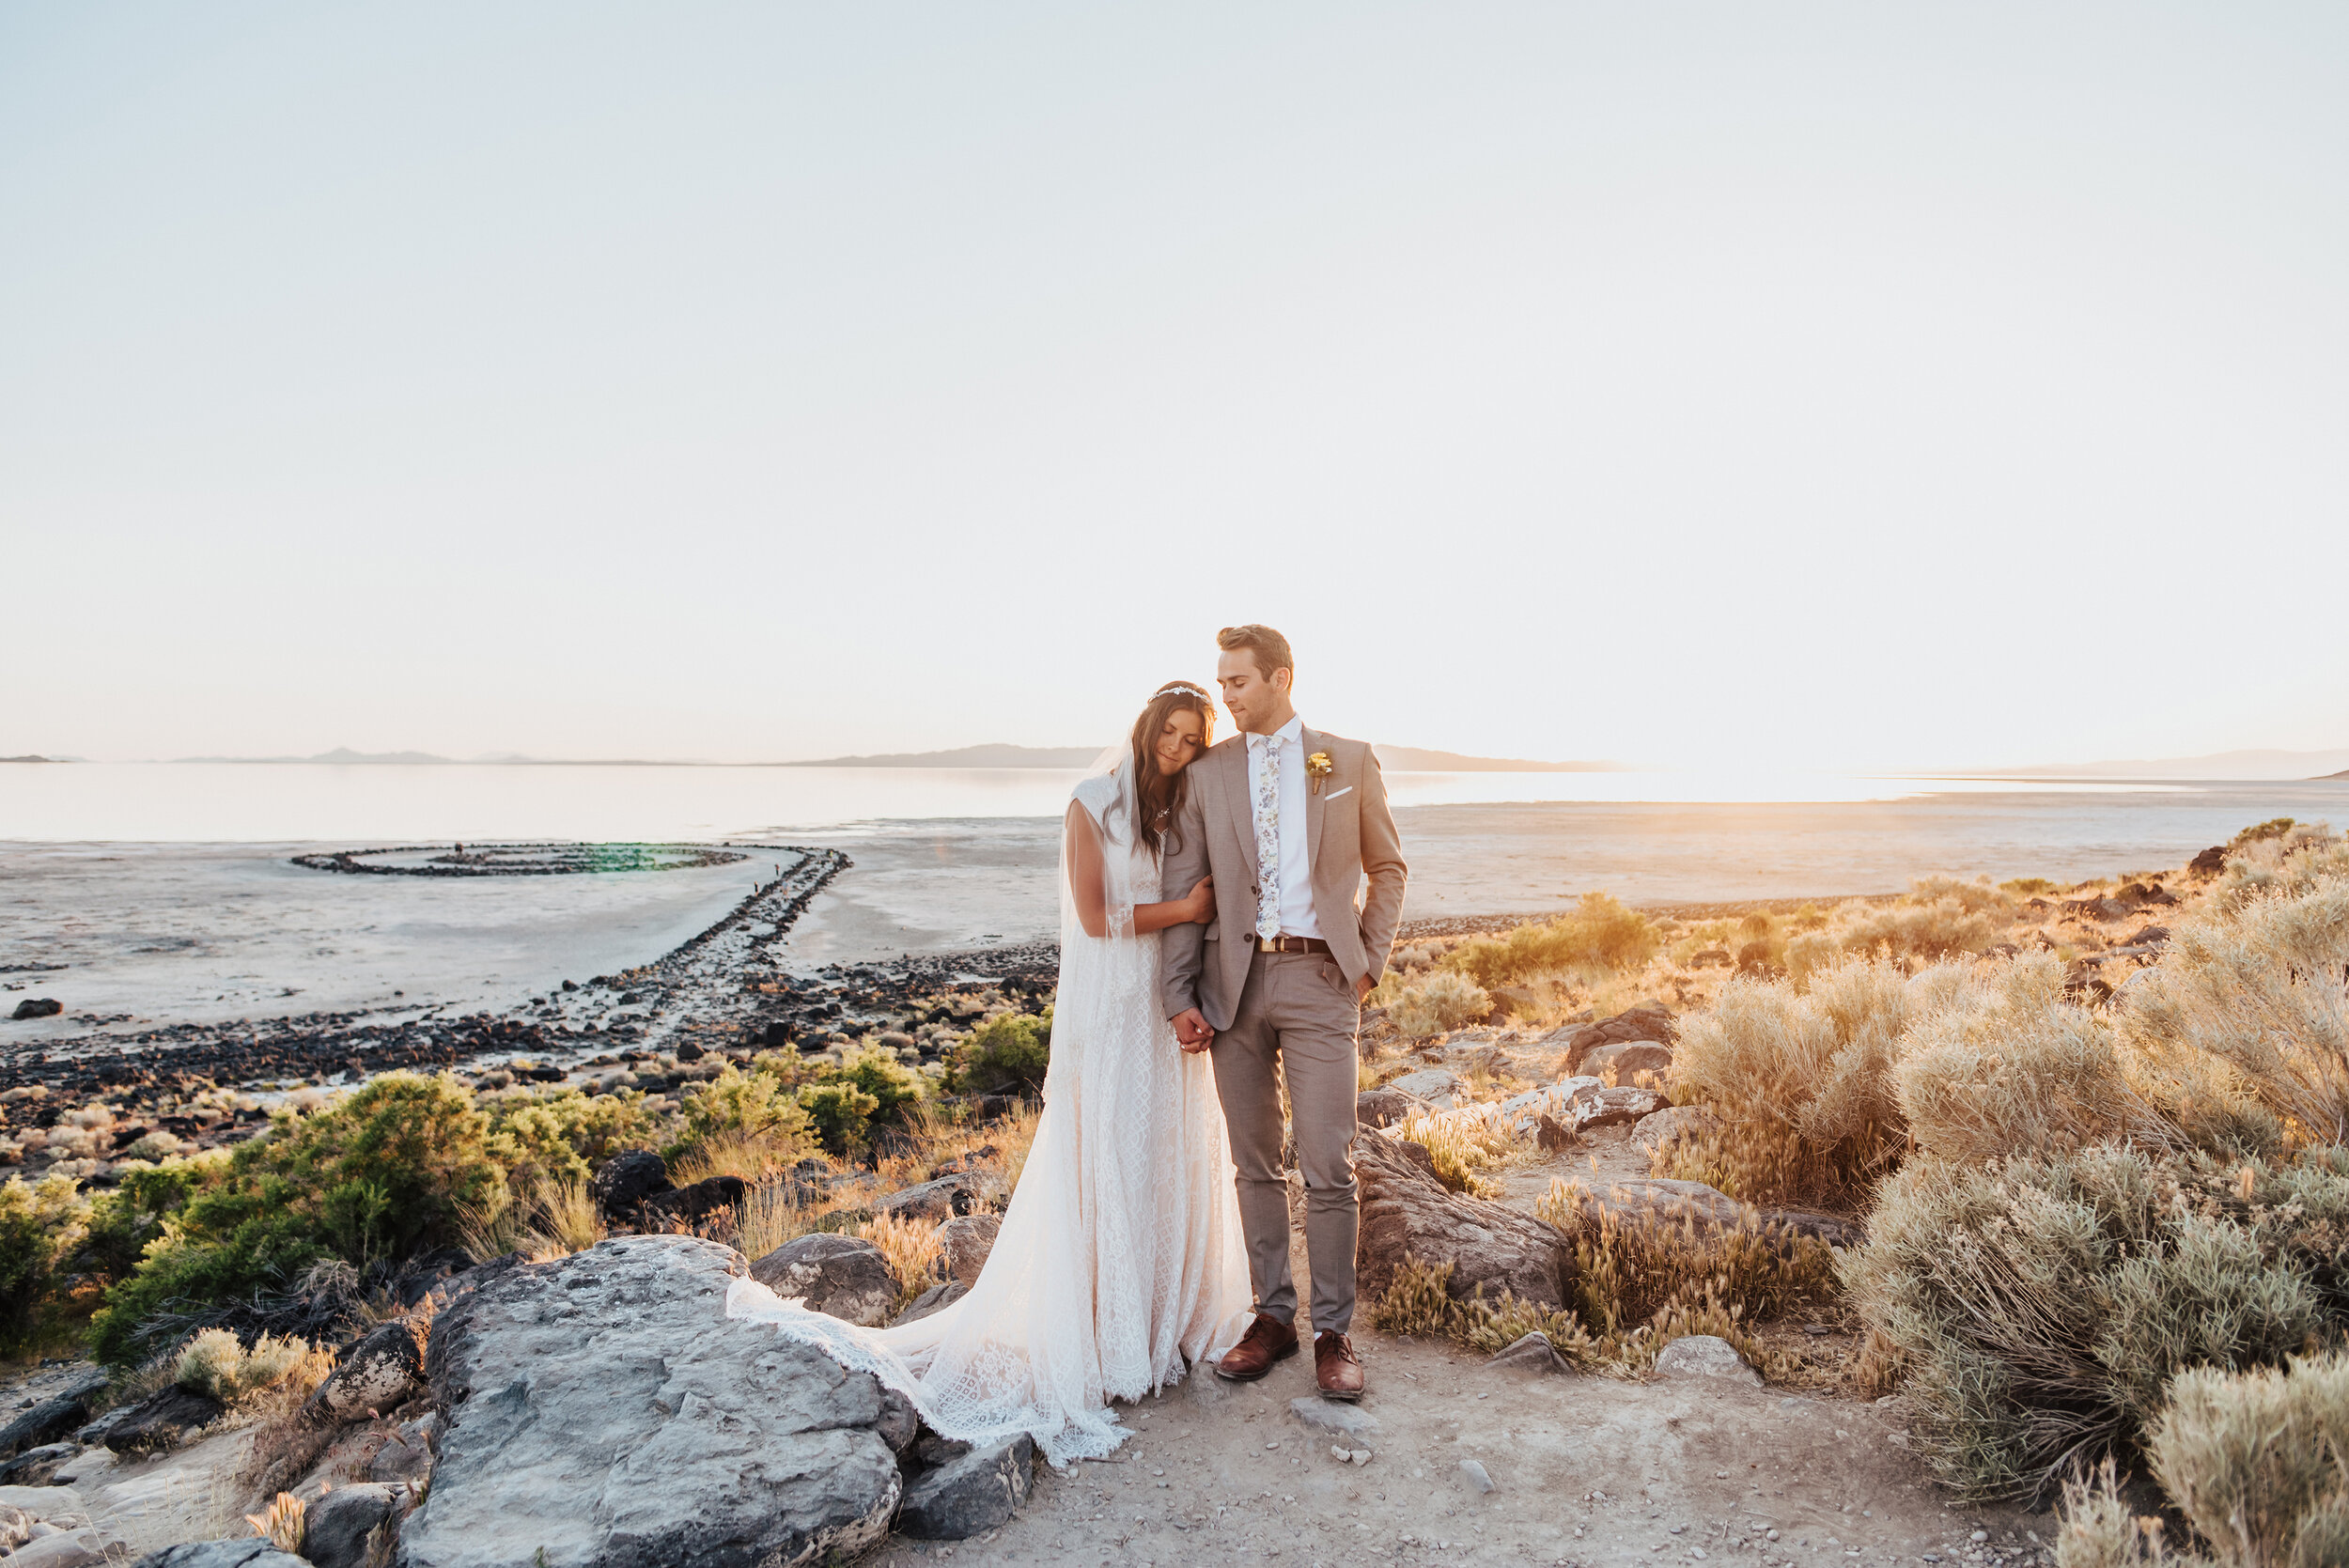 The sunset could not have painted a picture any more gorgeous than during this sunset formal session for the stunning bride and groom at the Spiral Jetty. #spiraljetty #GreatSaltLake #formalsession #SaltFlats #sunsetphotosession #NorthernUtah #weddingphotographer #formalphotographer #brideandgroom #outdoorformals #weddingformalphotography